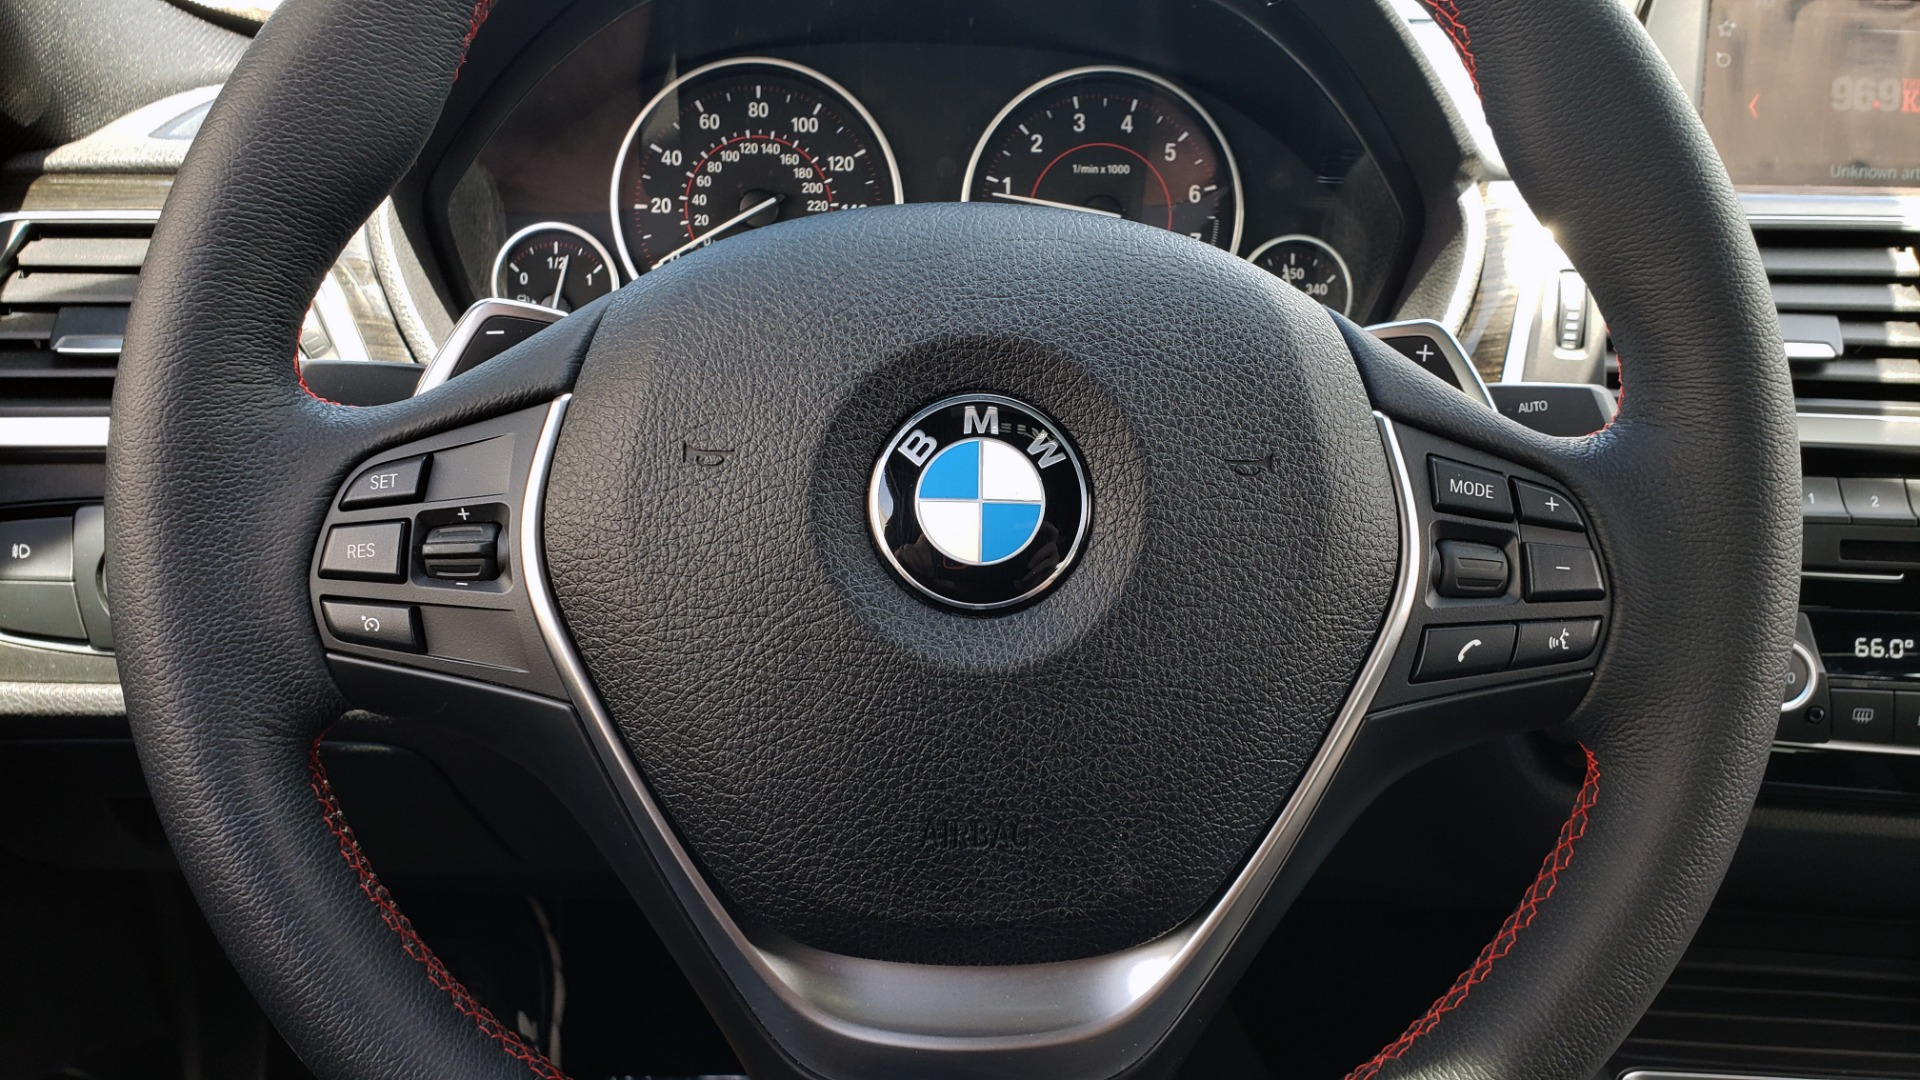 Used 2018 BMW 3 SERIES 330I XDRIVE / CONV PKG / SUNROOF / SPORT STS / HTD STS / REARVIEW for sale $28,495 at Formula Imports in Charlotte NC 28227 37